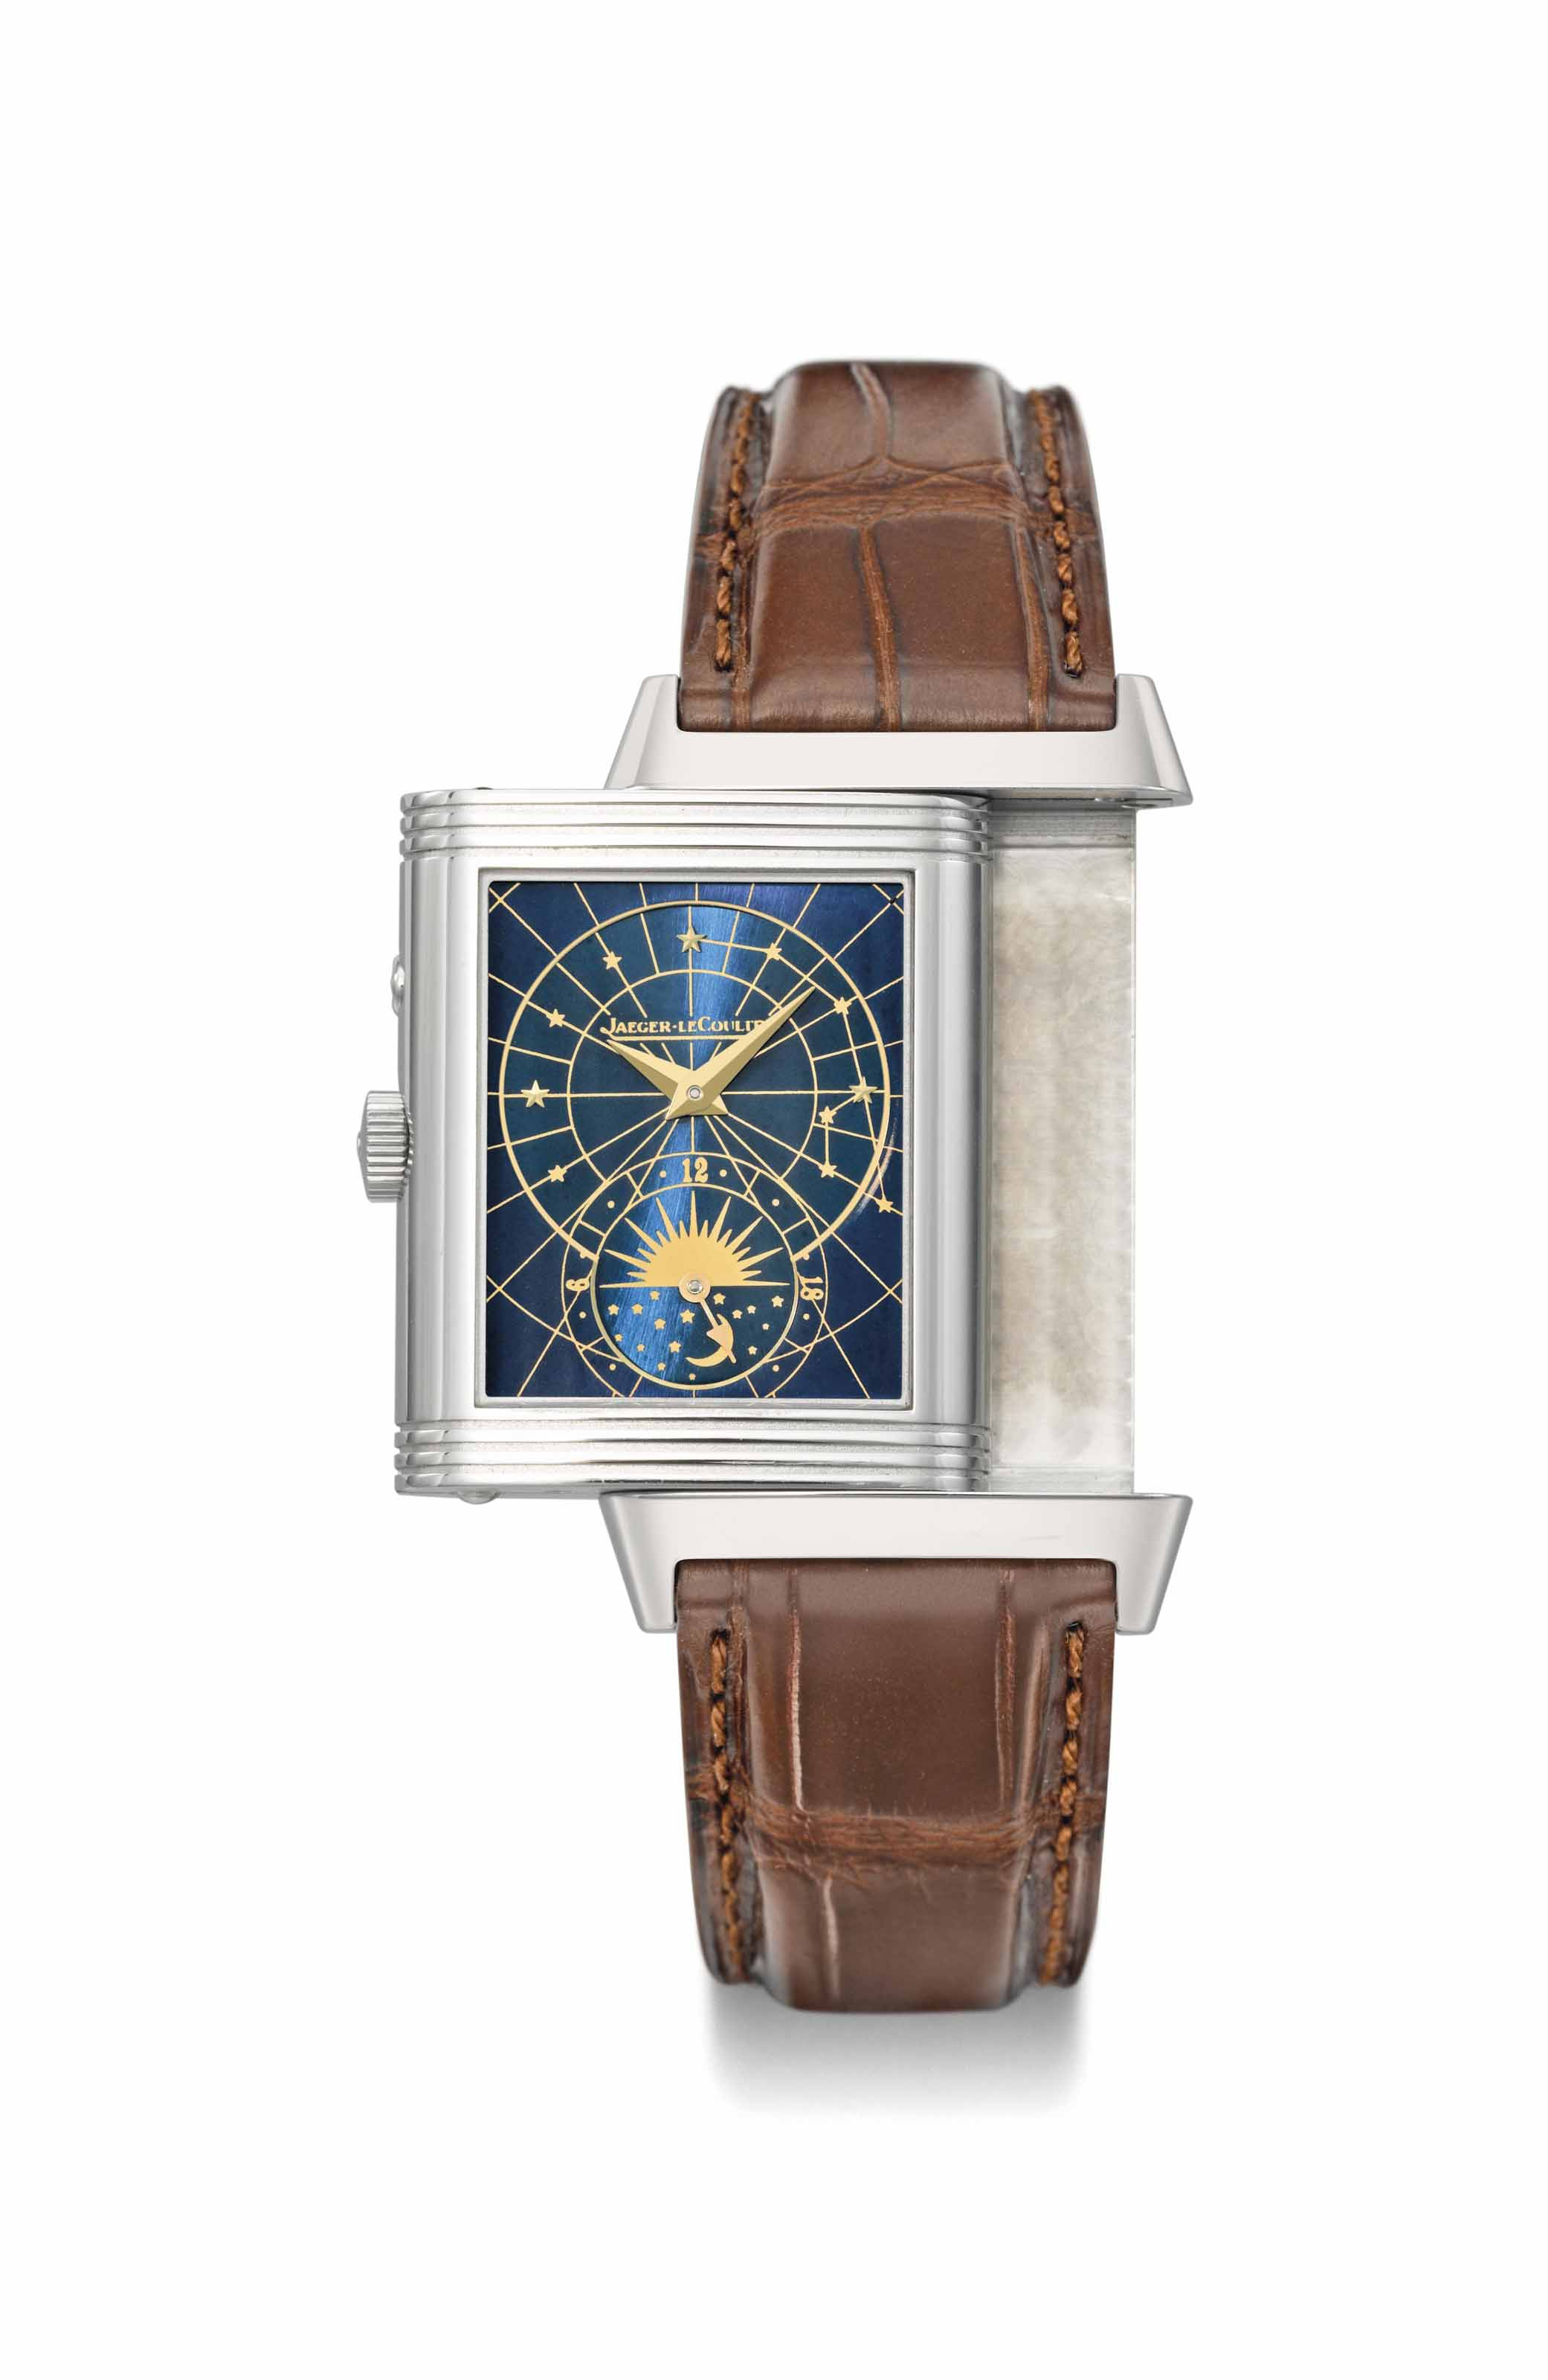 Jaeger-LeCoultre. A fine, rare and very attractive stainless steel rectangular reversible double dial wristwatch with 24 hour display and specially made blue starburst dial showing the big dipper constellation